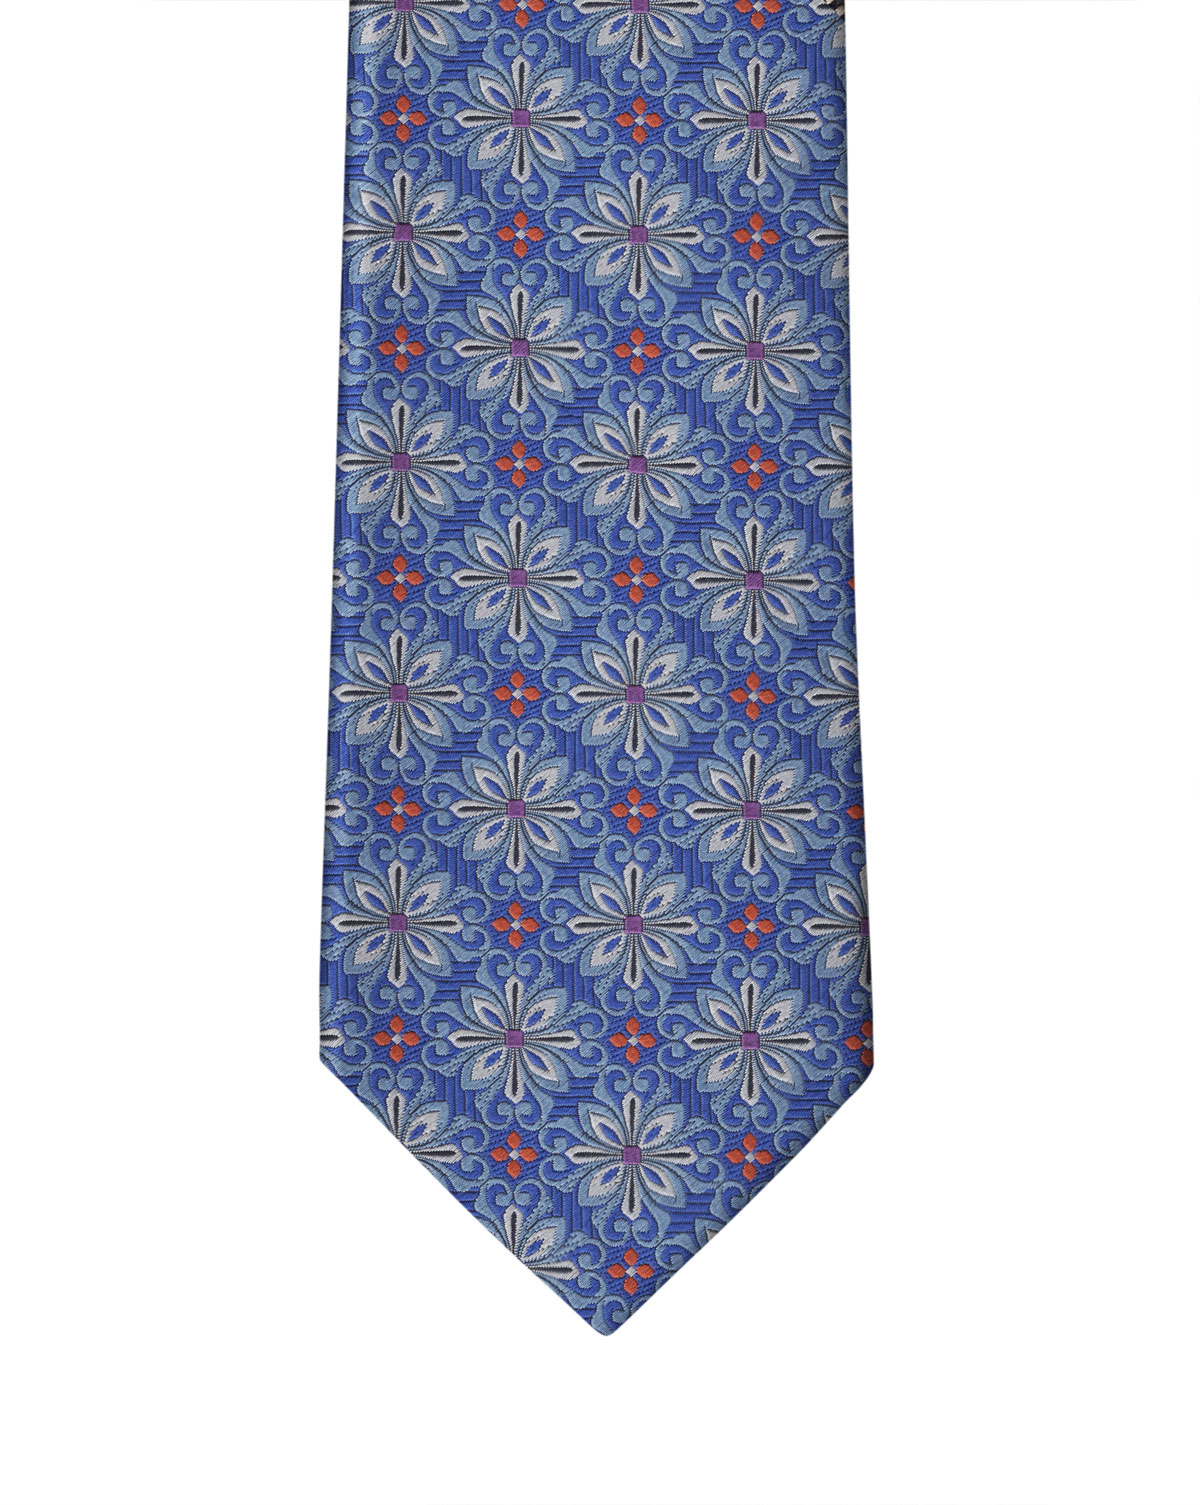 Royal Blue Medallion Necktie